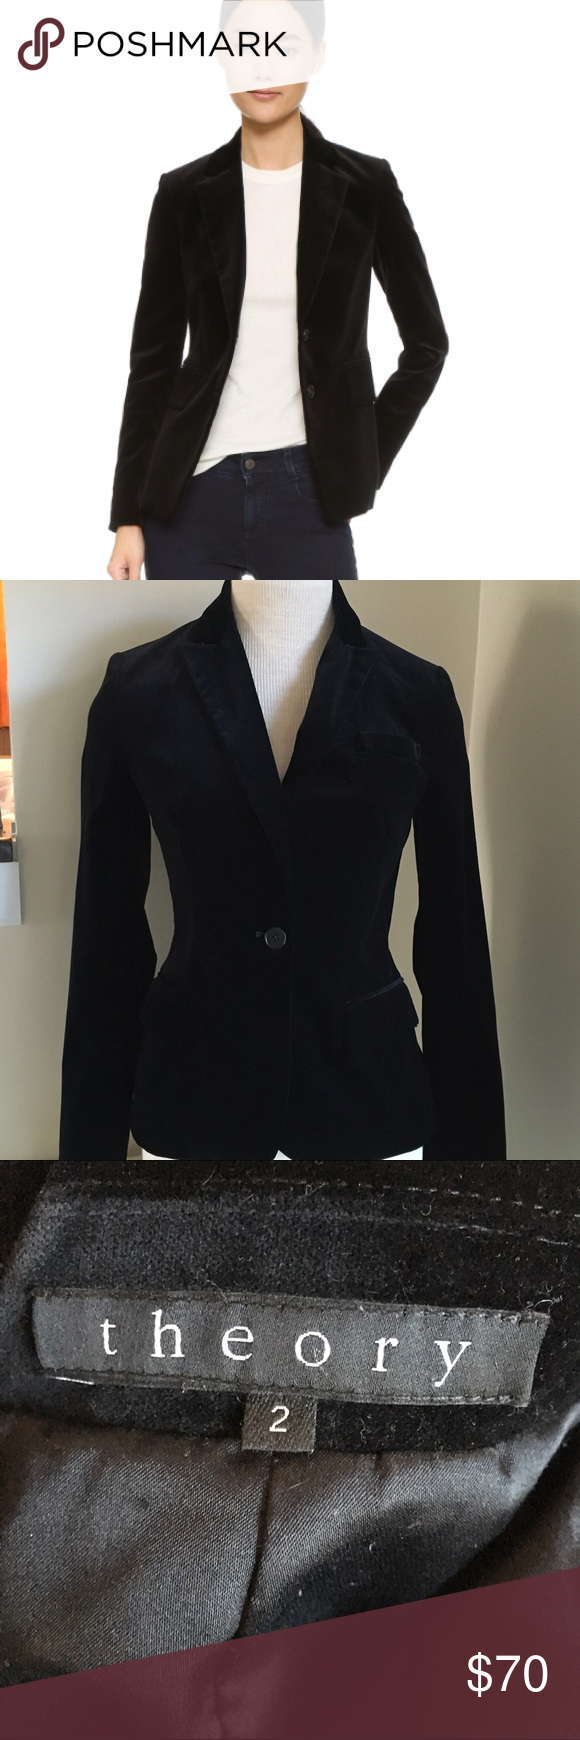 Theory Velvet Single Button Blazer Luxurious simple elegant it feels amazing perfect for the upcoming fall holiday season it's classic never goes out of style. Theory Jackets & Coats Blazers